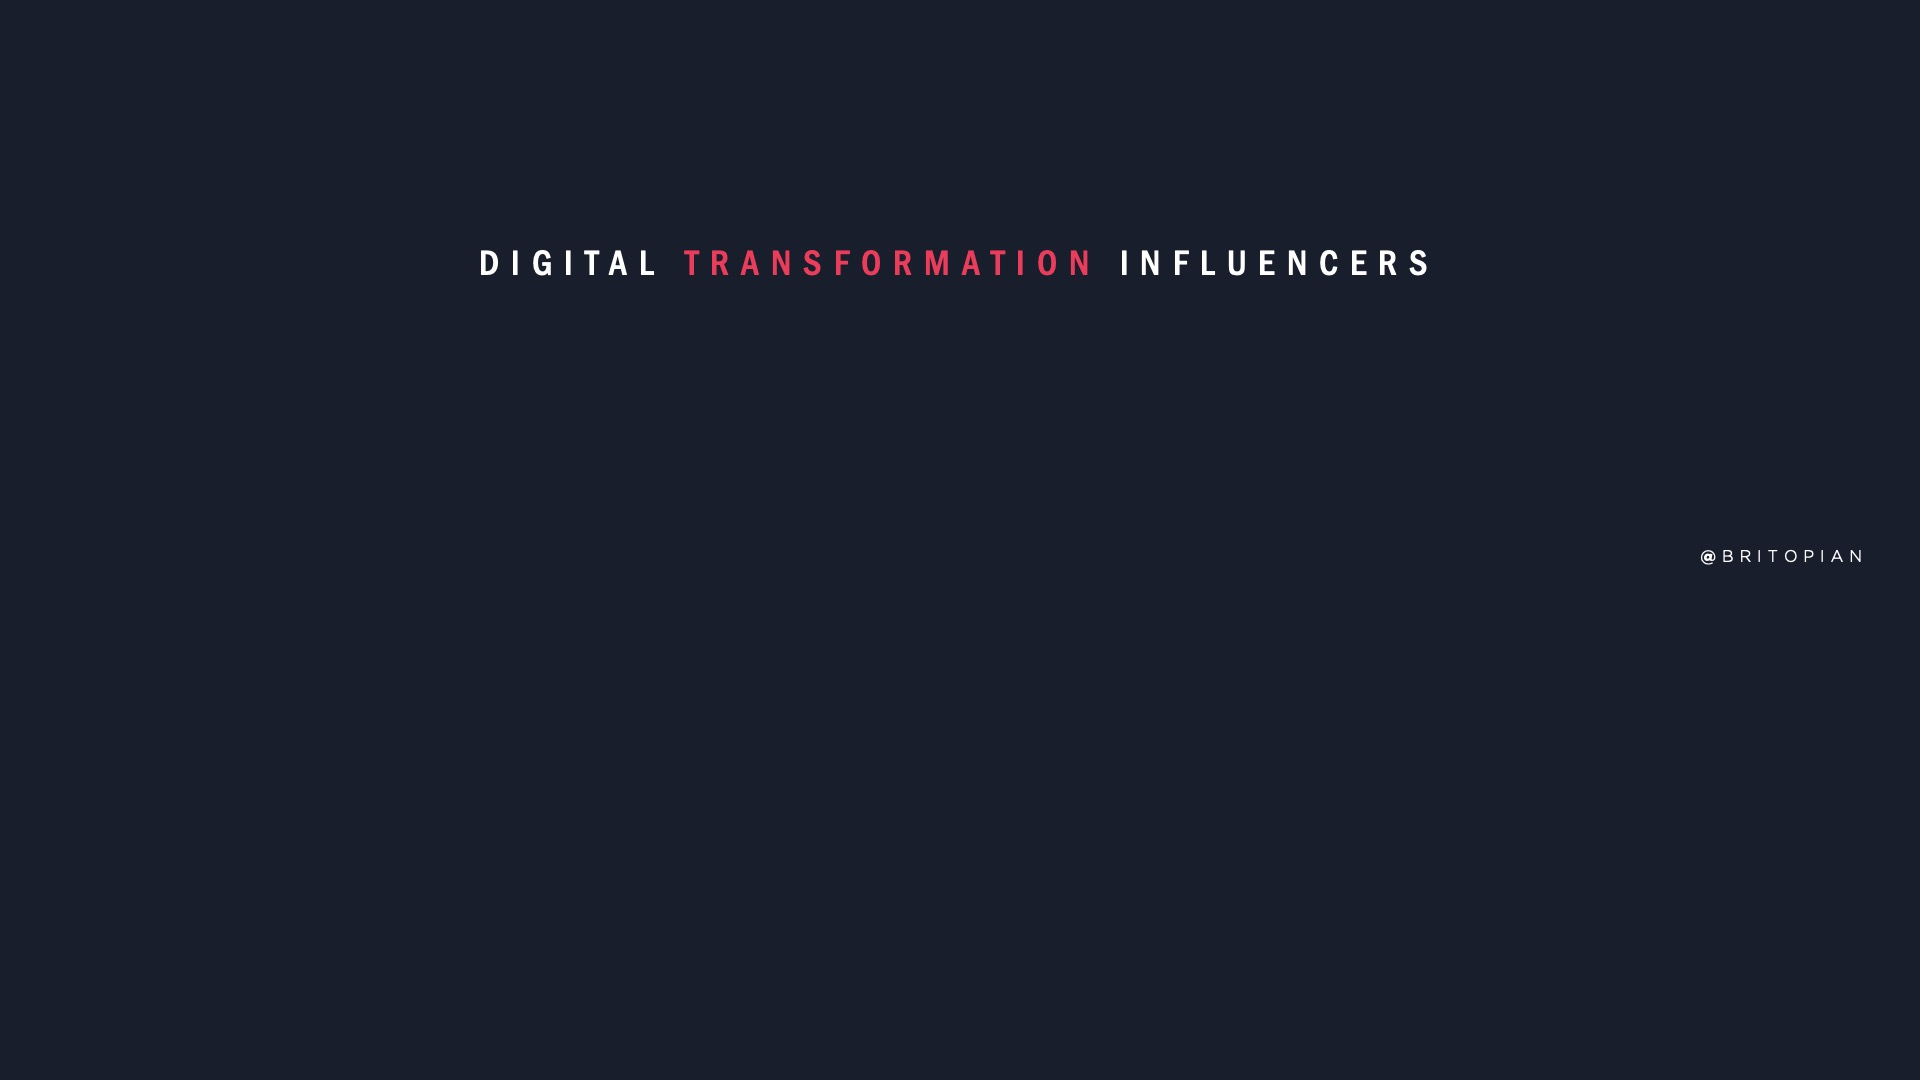 Digital Transformation Influencers: Who Are They?